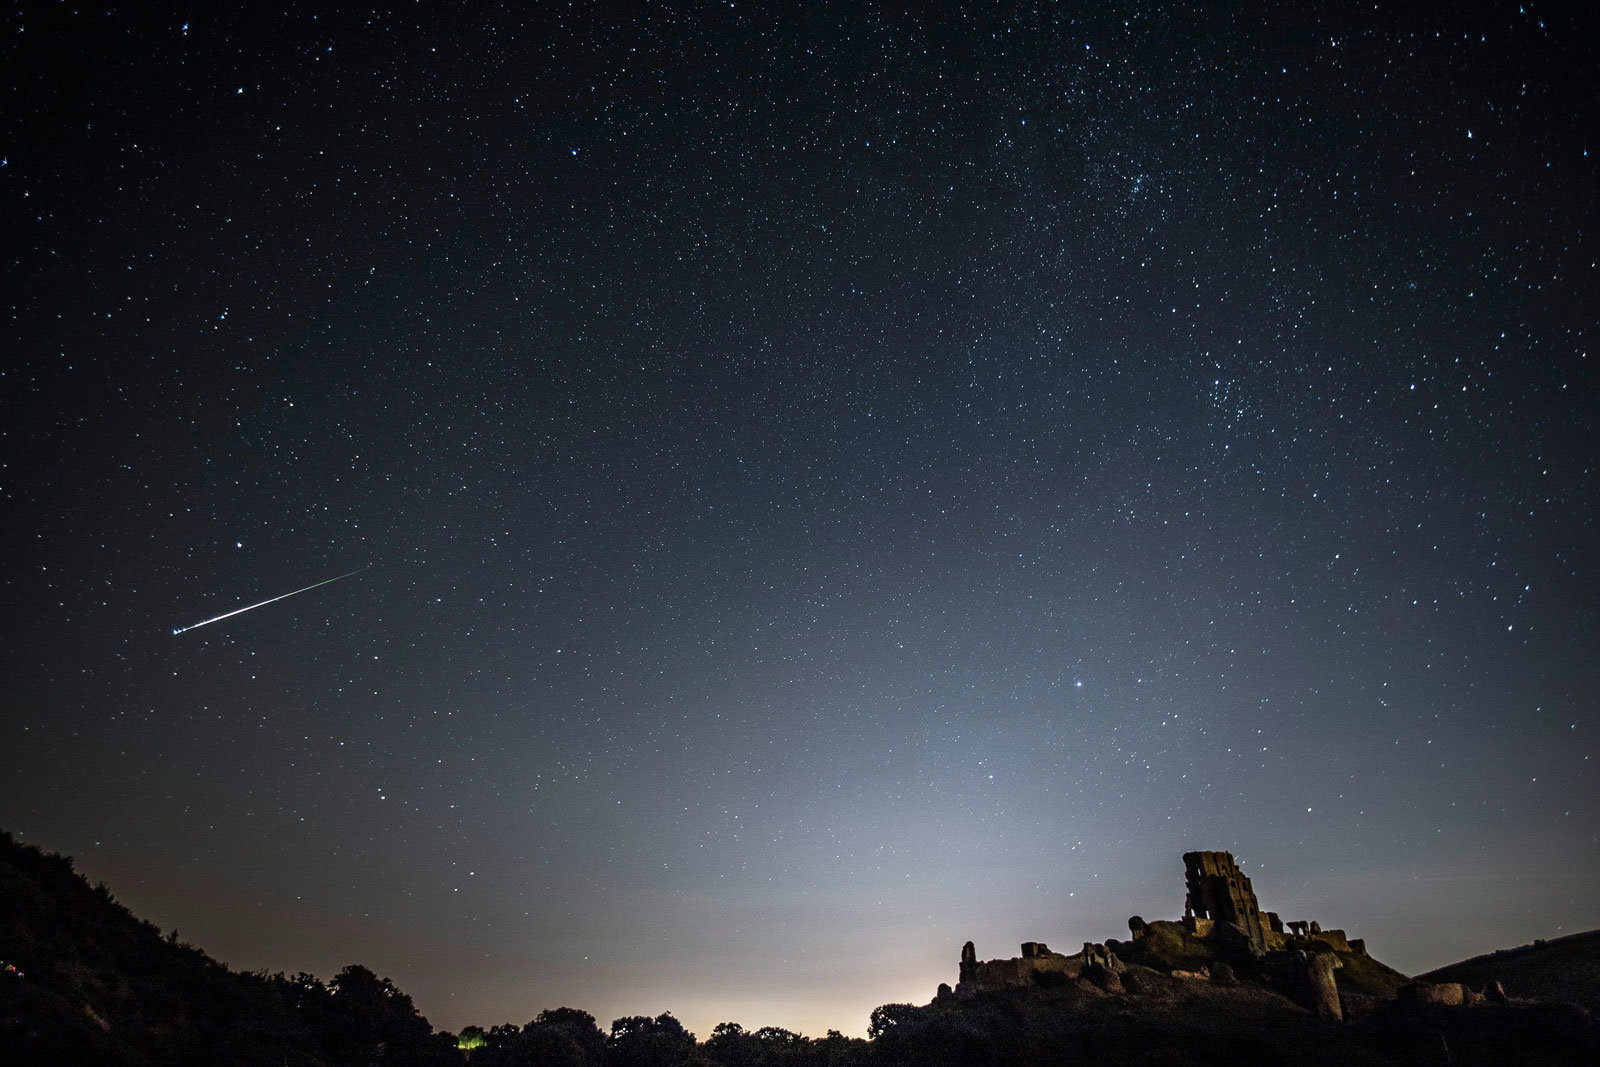 Meteors in the night sky above the UK.